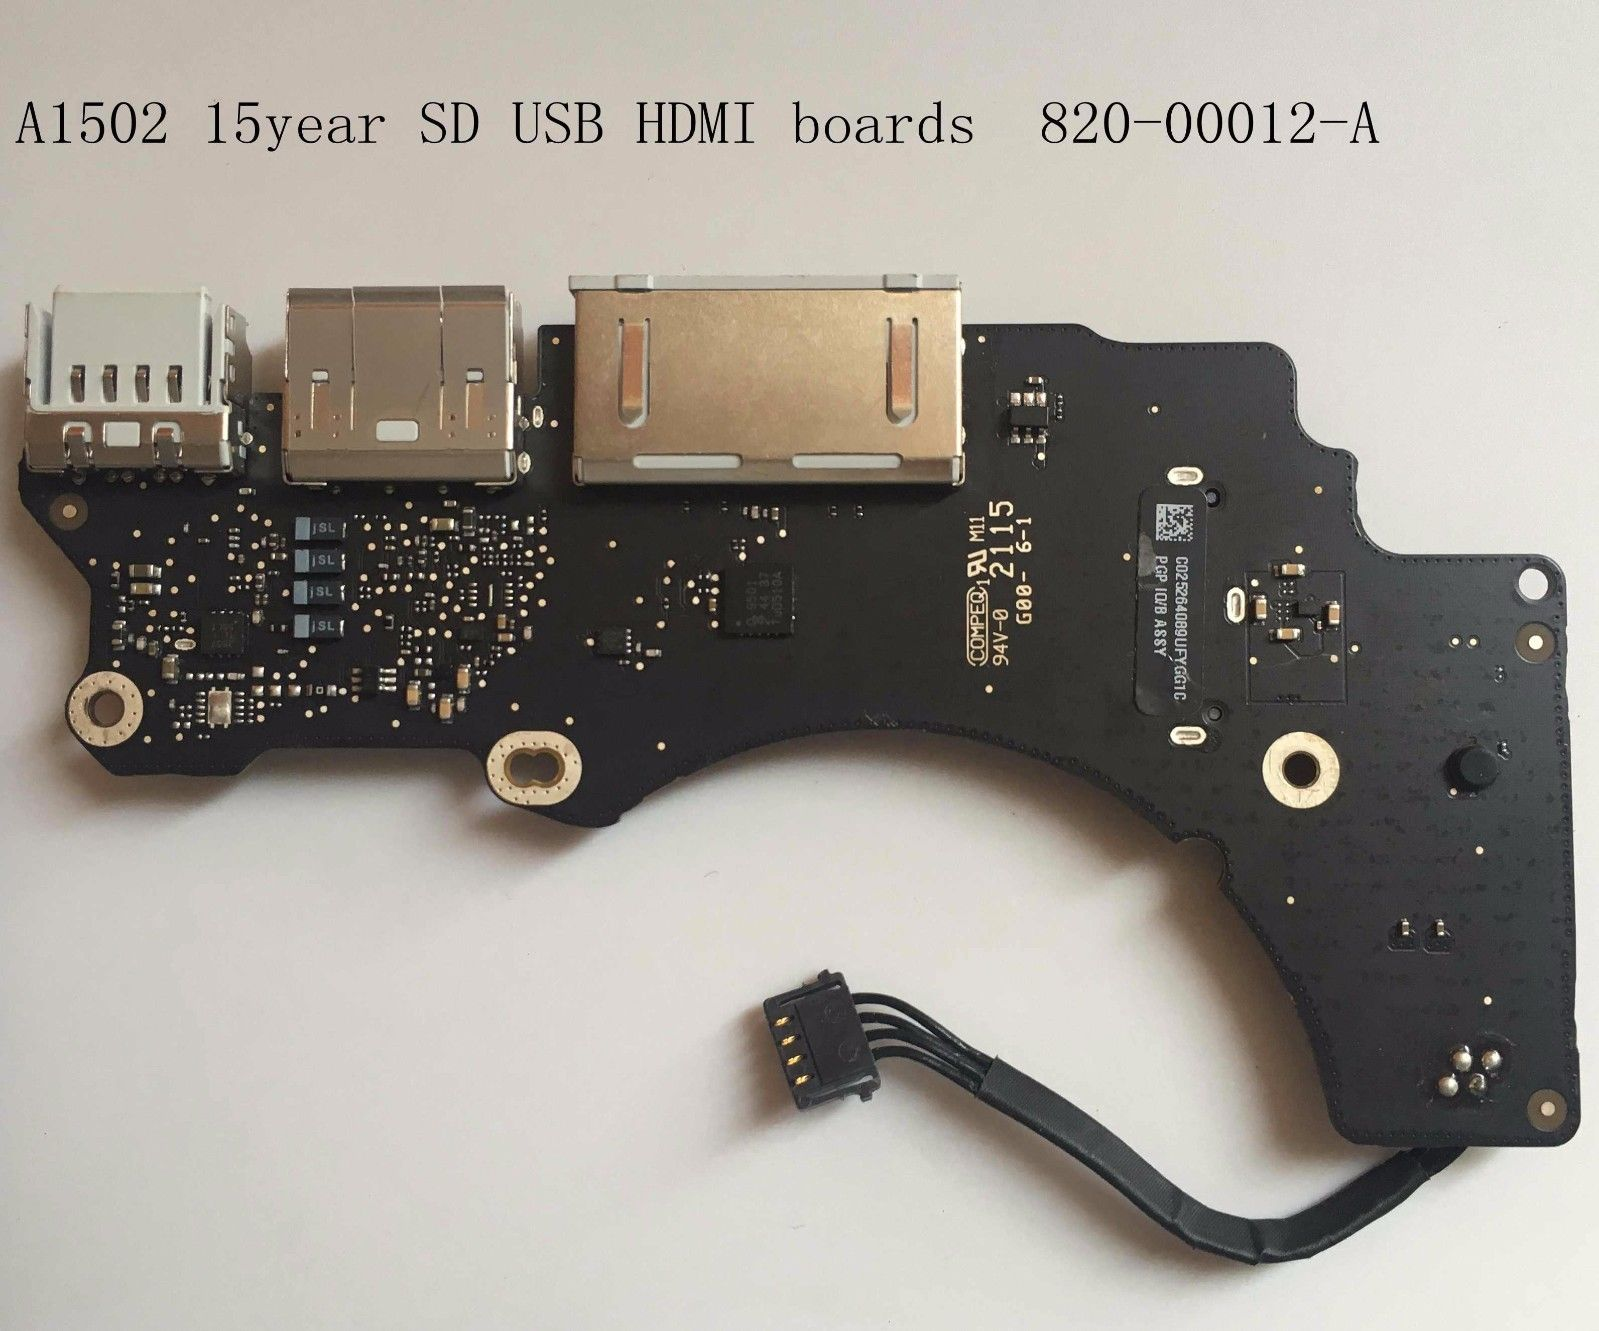 820-00012-A FOR MacBook Pro 13inch A1502 Early 2015 USB HDMI SDXC Board